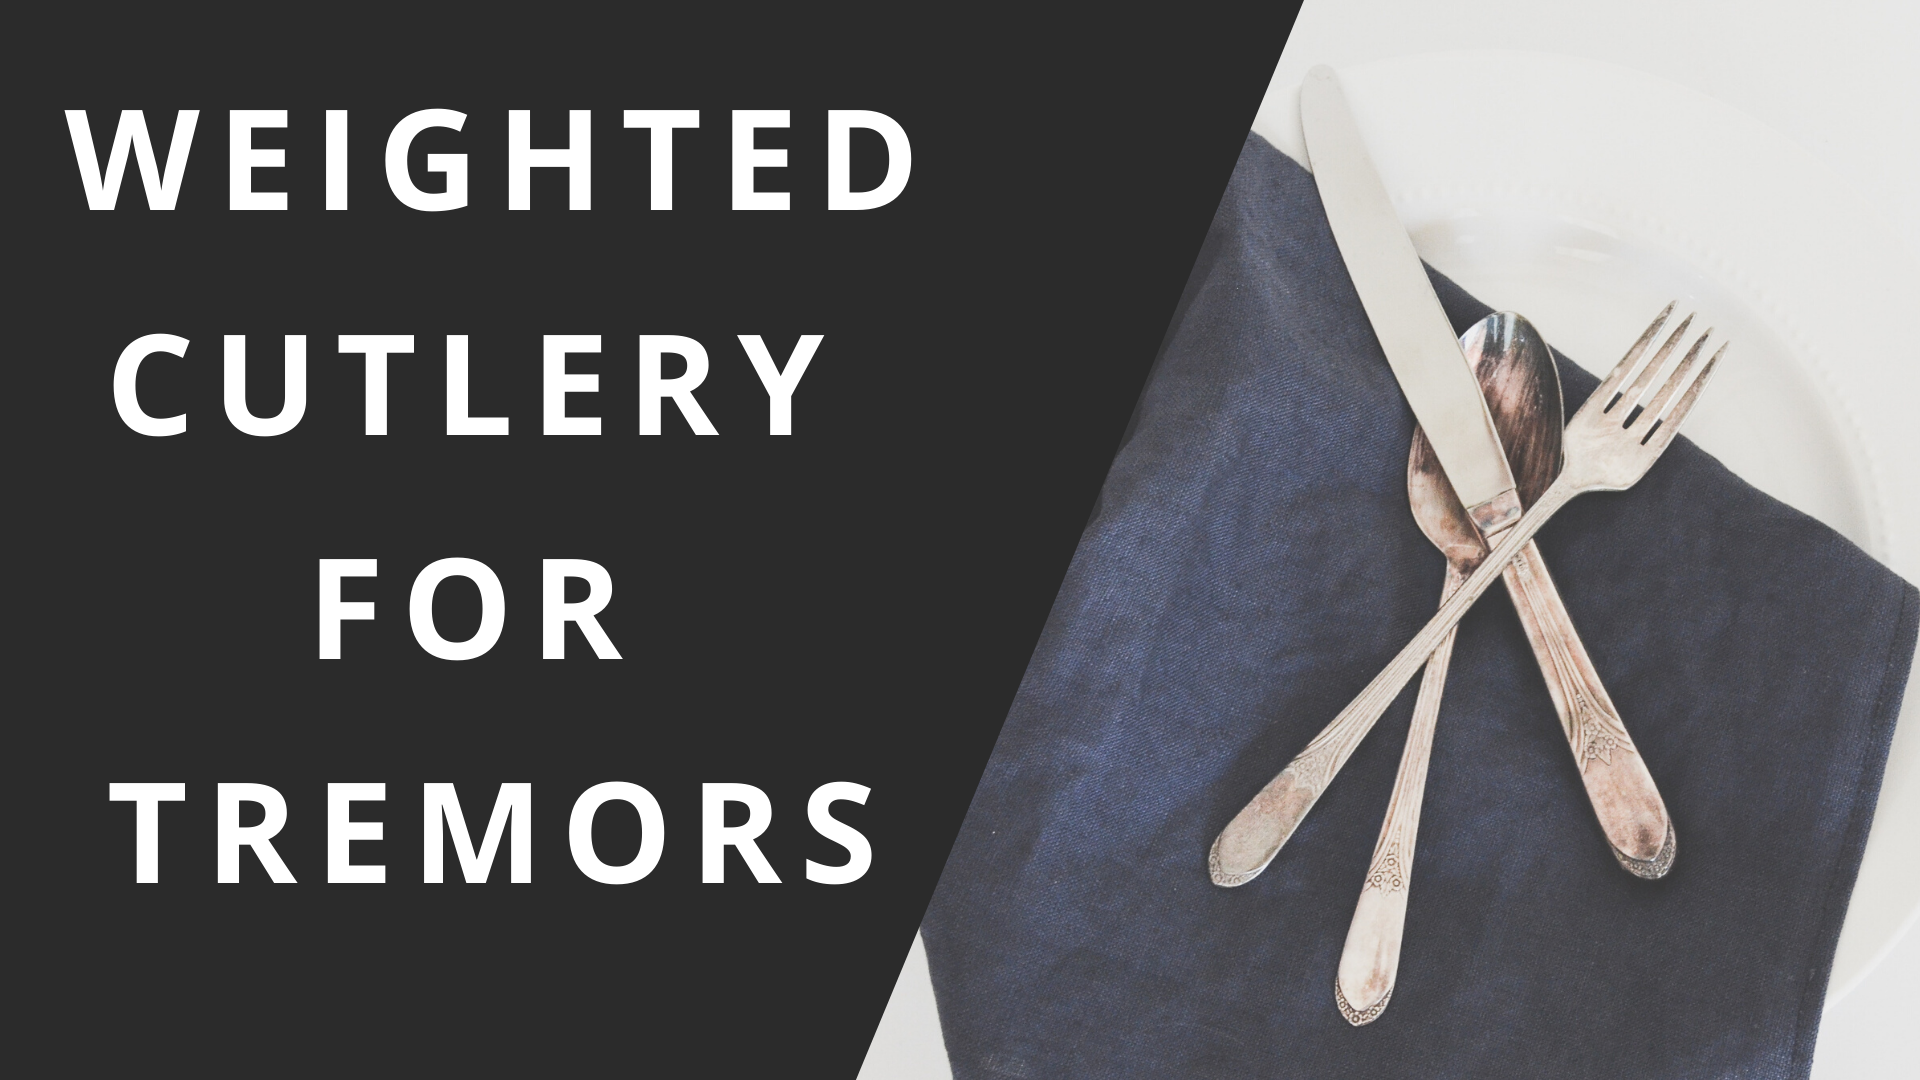 5 Best Weighted Cutlery Sets for People with Tremors